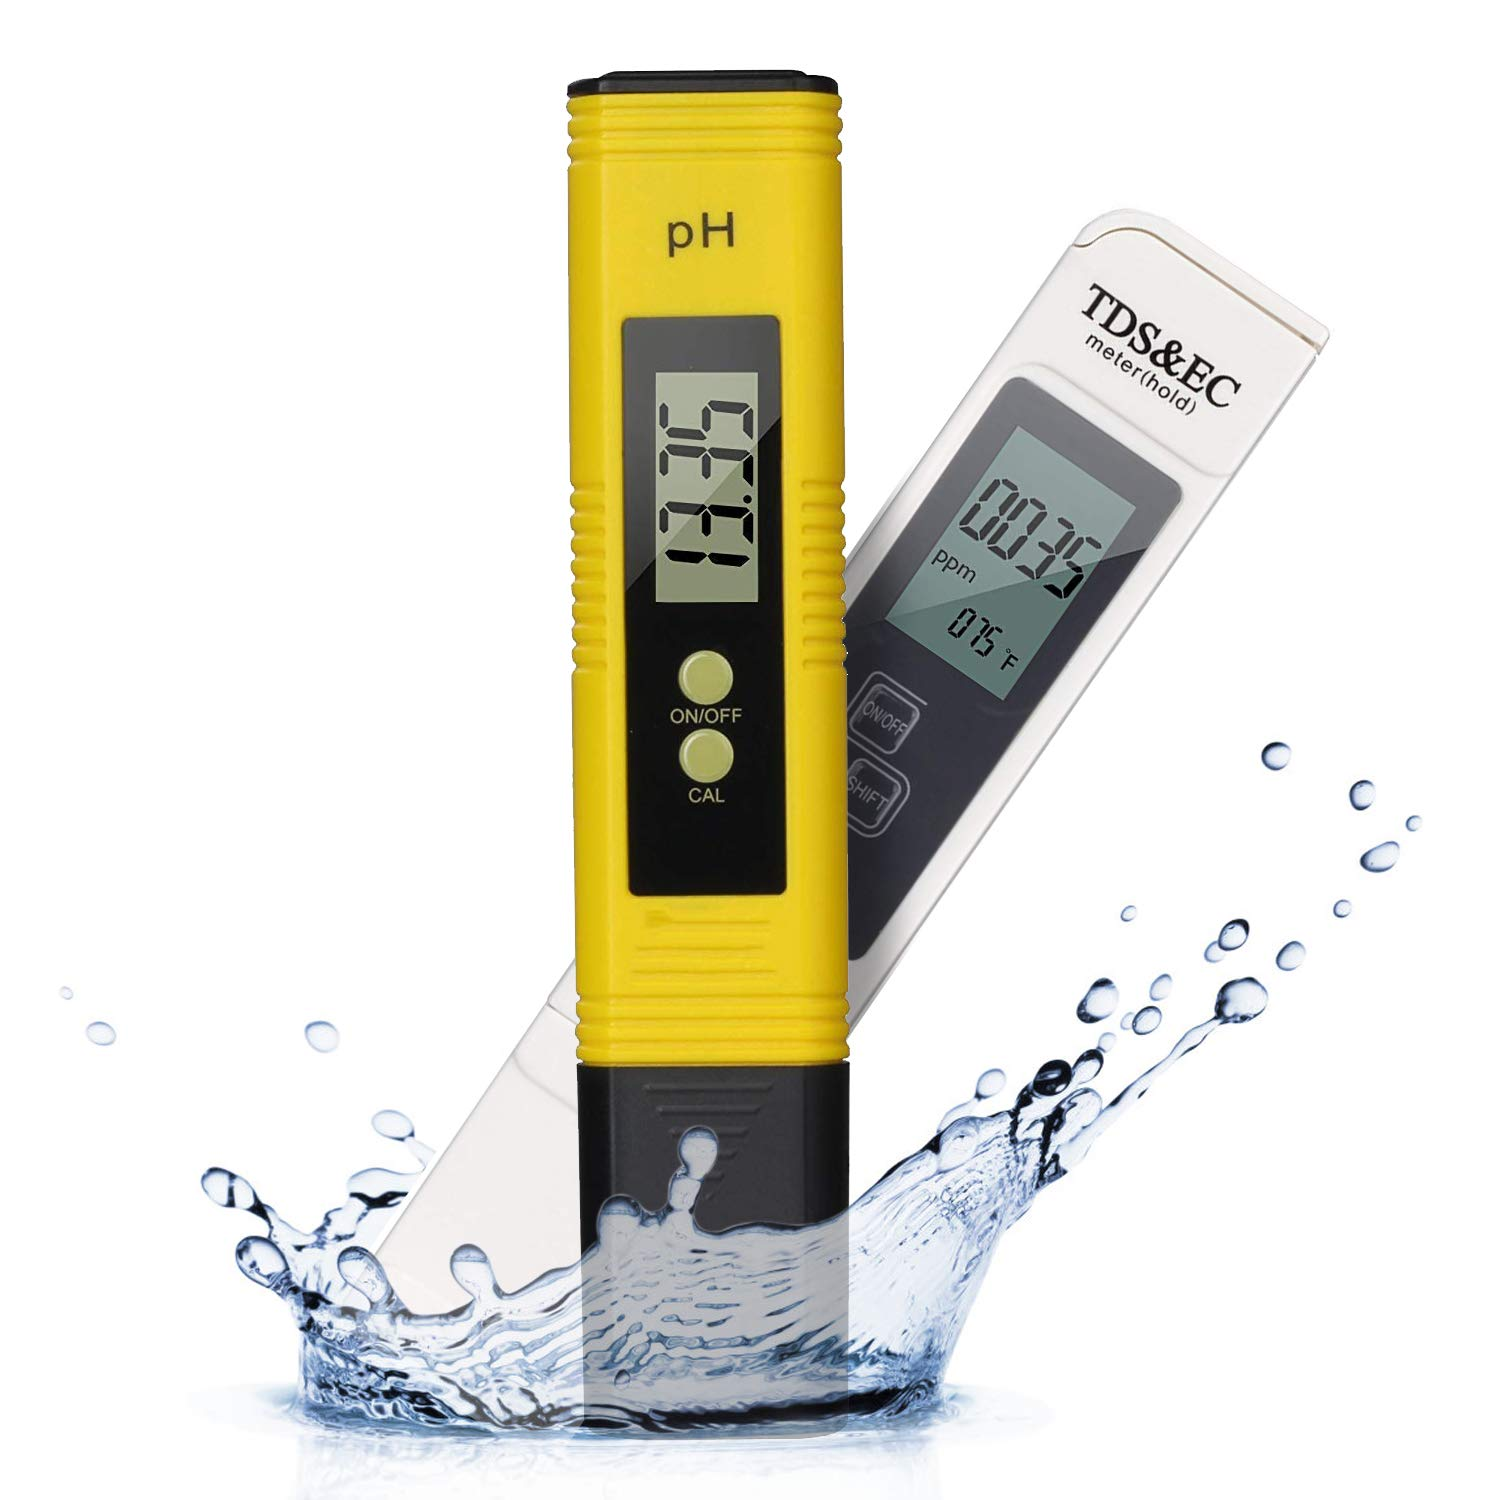 Digital PH Tester, PH Meter 0.01 PH High Accuracy Water Quality Tester with 0-14 PH Measurement Range,Ideal PH Strips for Waterr with Drinking, Aquariums, etc.